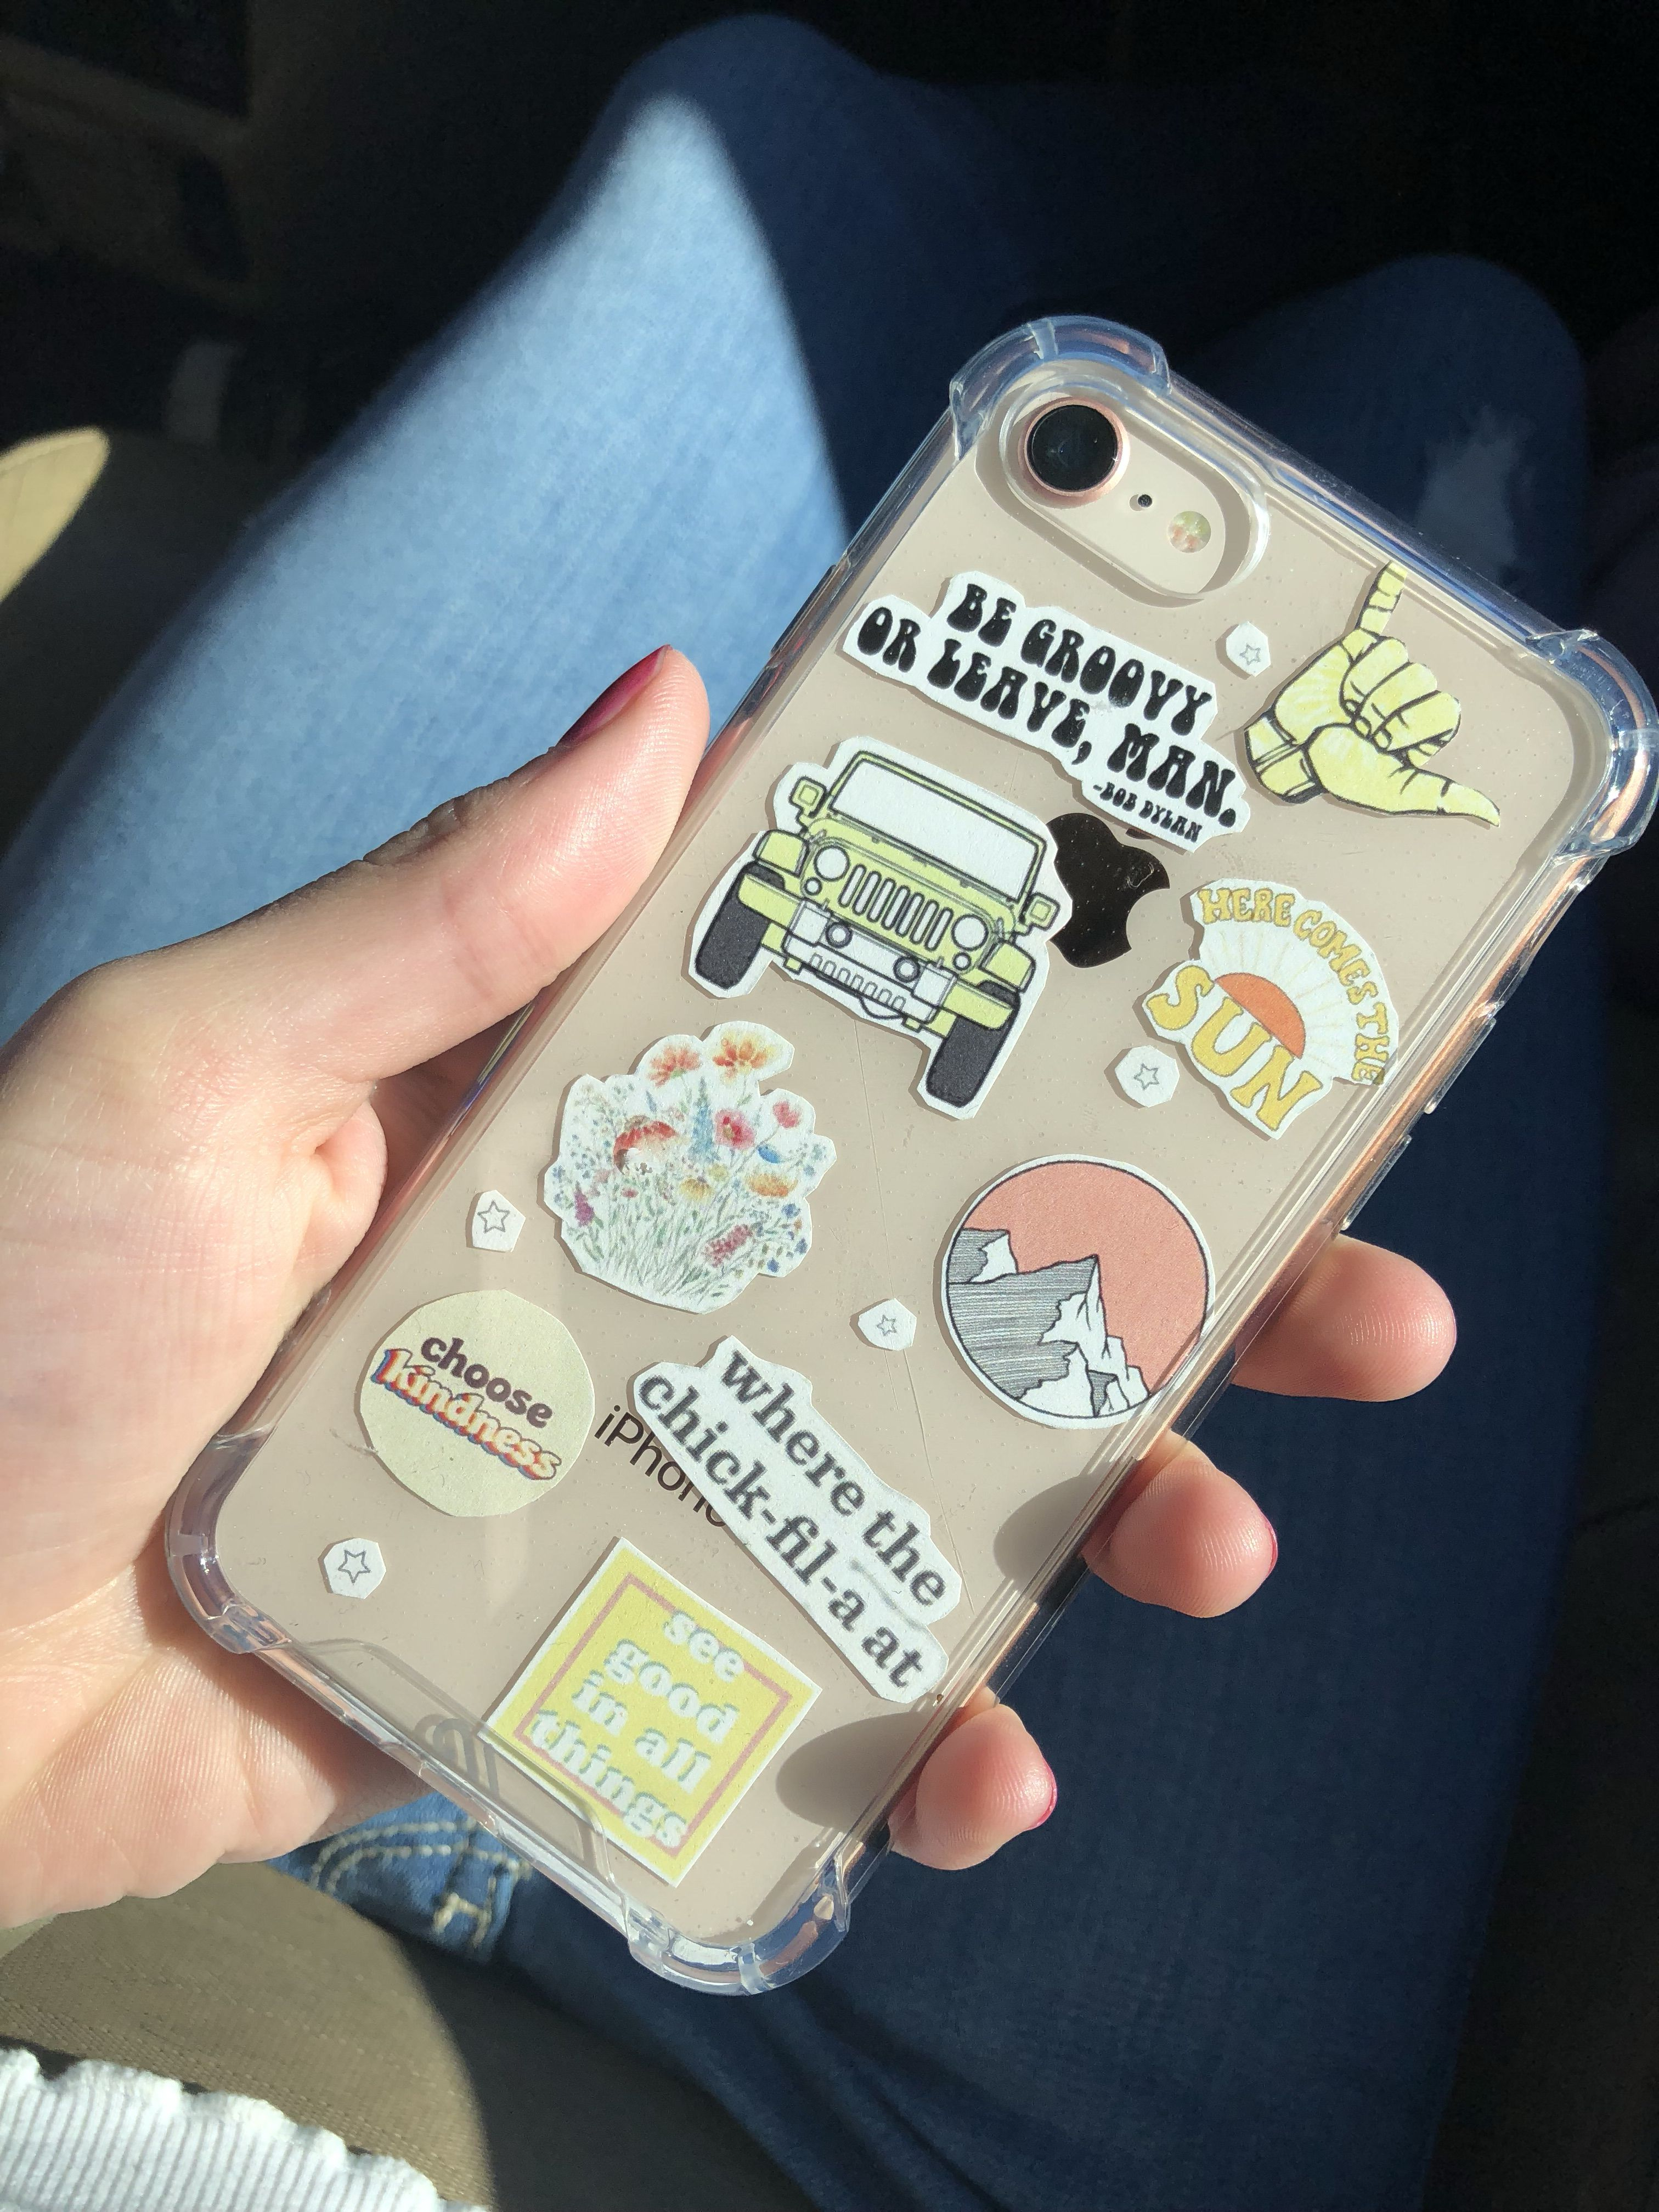 Pin by 🌻Emma🌻 on ♥️Phone case ♥️ in 2019 | Aesthetic phone ...